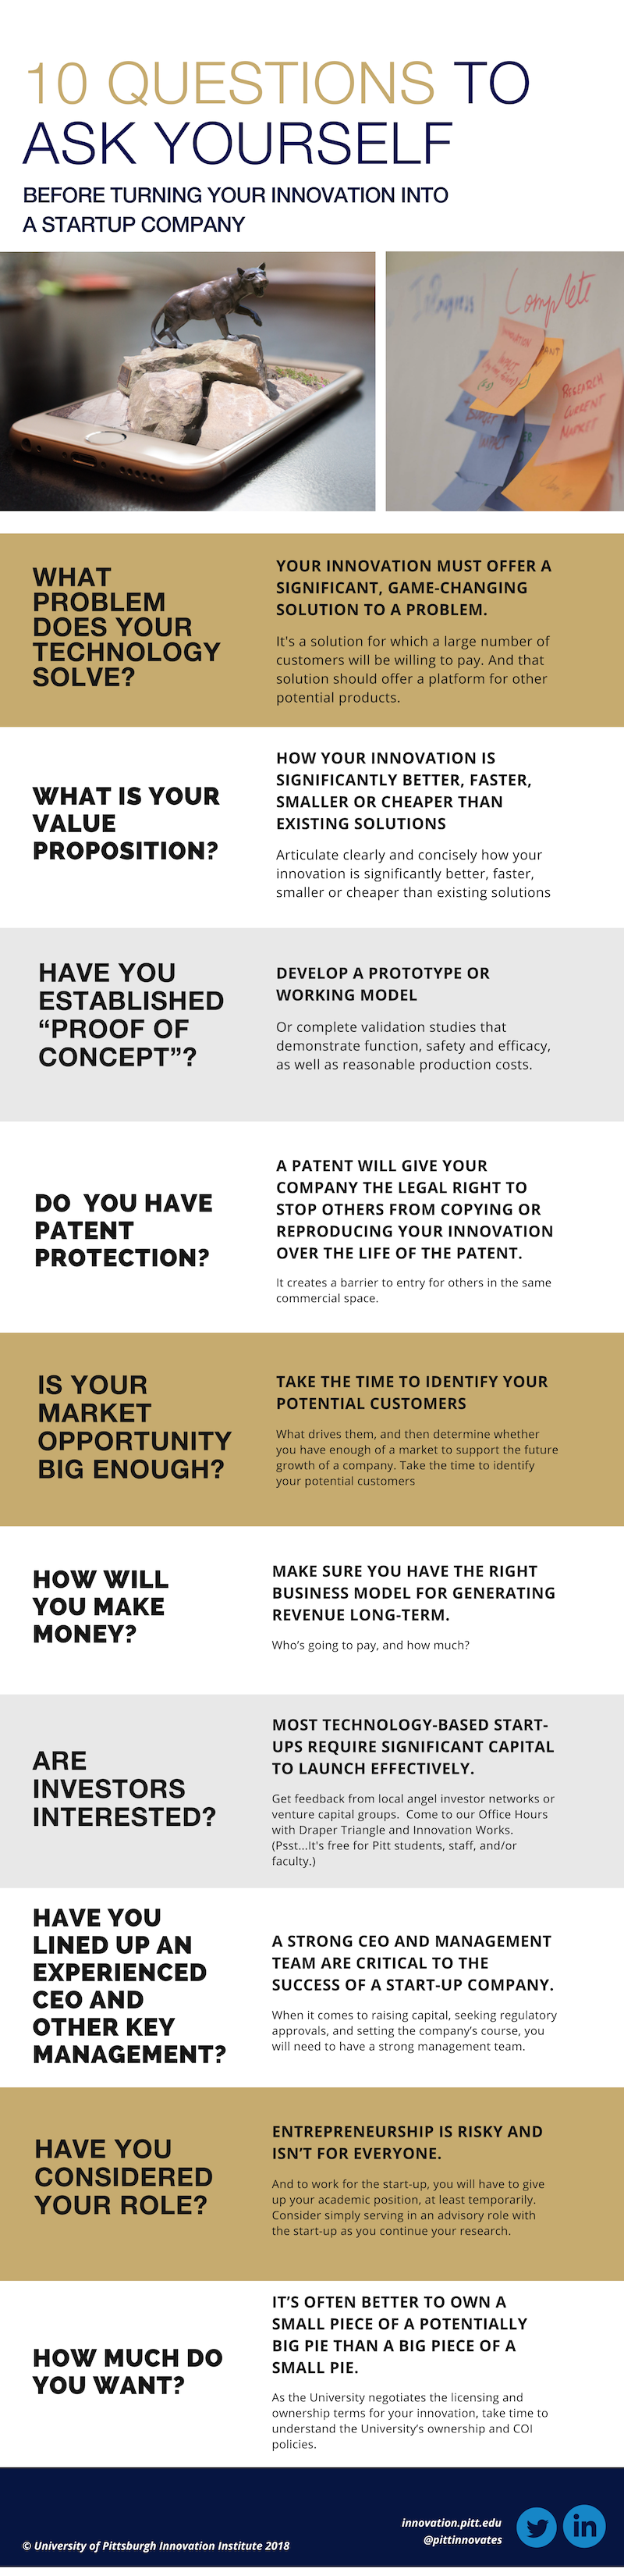 10 questions to ask yourself before turning your innovation into a start-up company ? Patent protection? How will you make money? Are Investors interested?